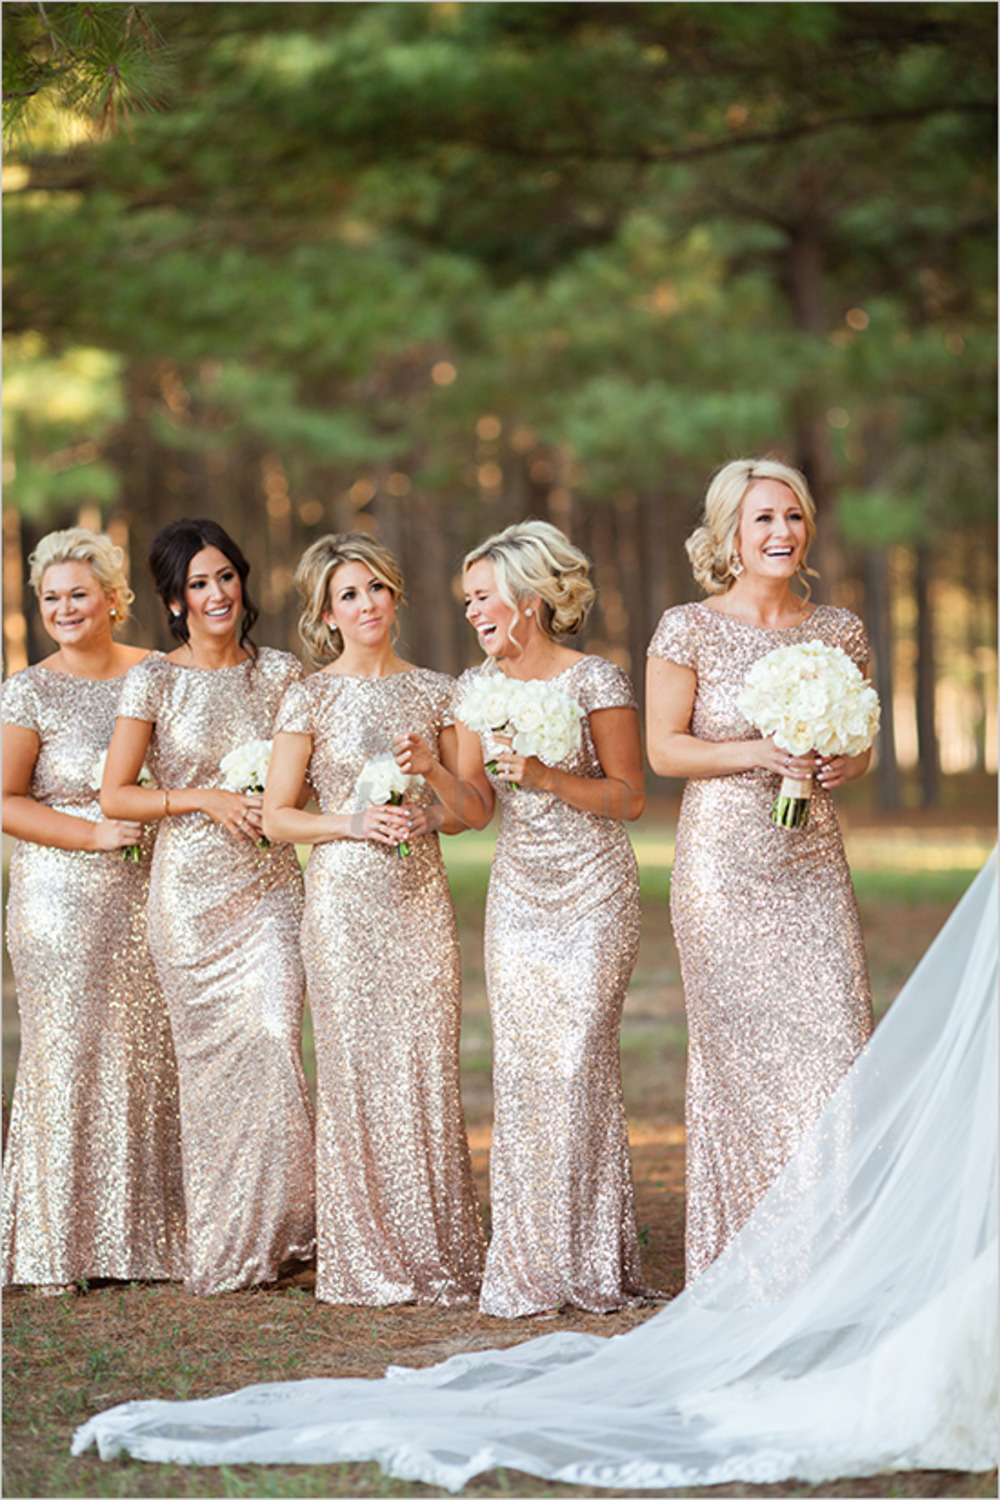 10 Wedding Ideas For Formal Glamour Socialandpersonalweddings